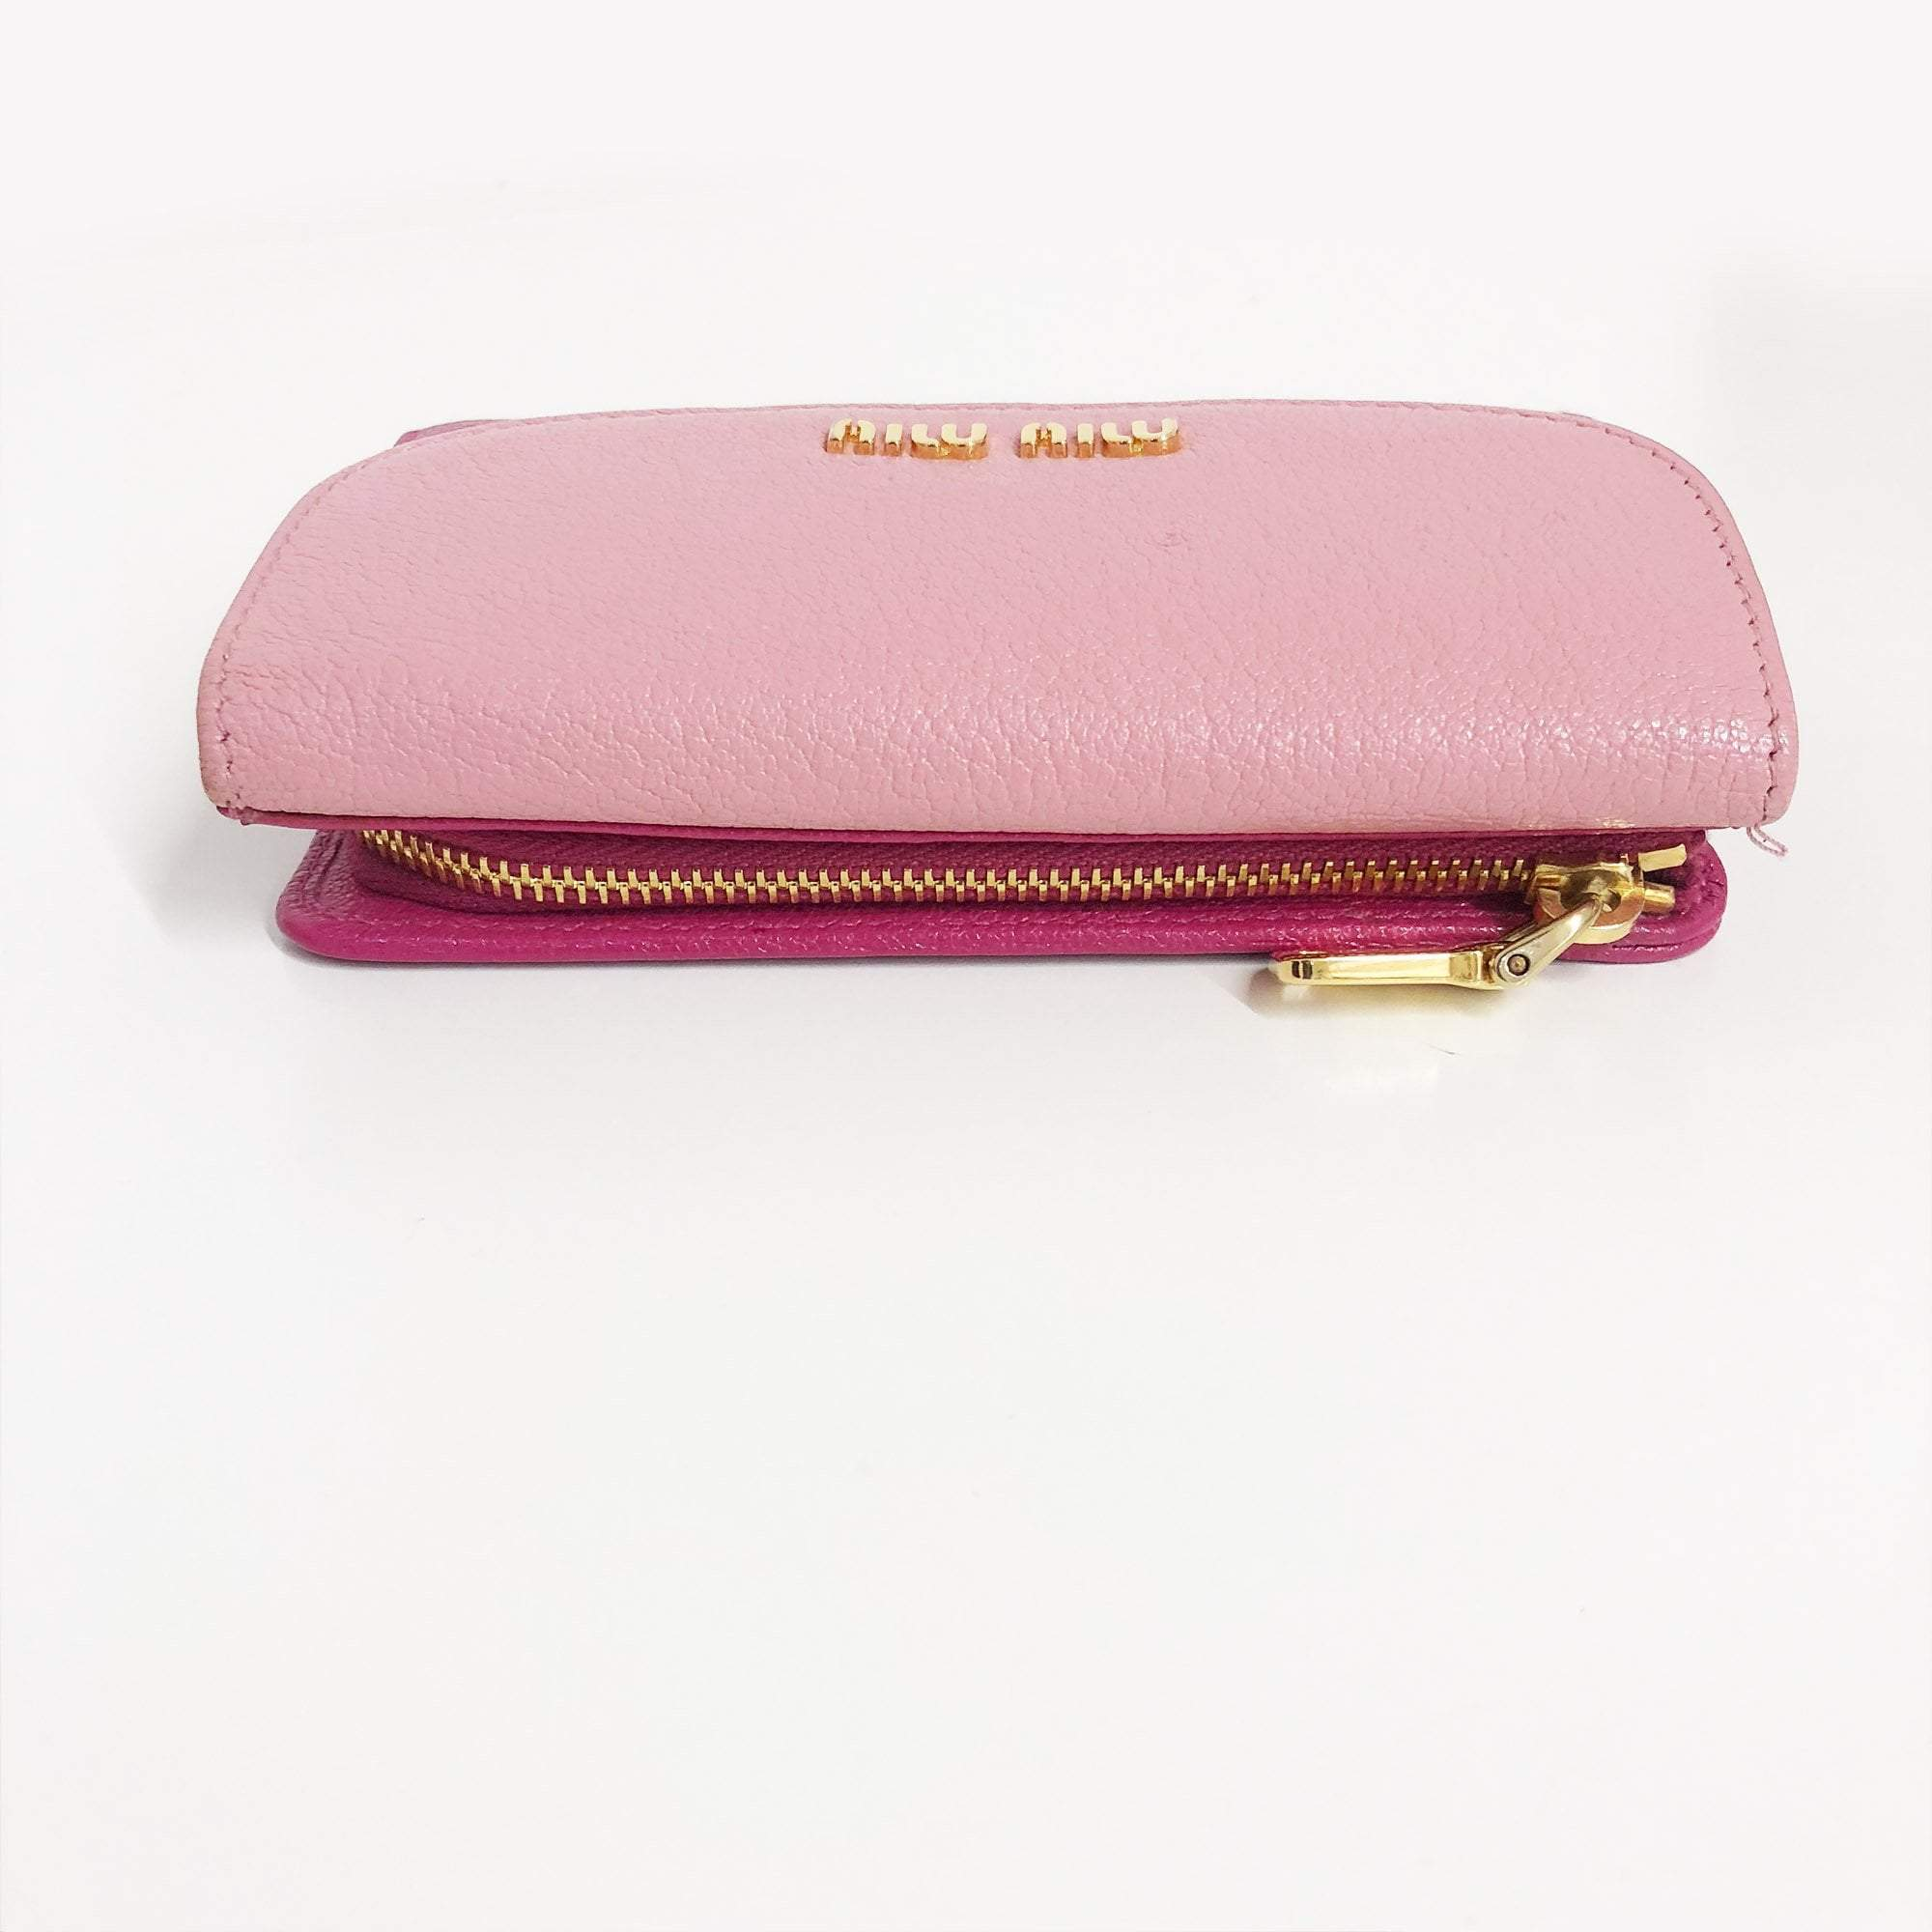 Miu Miu Pink Folded flap Zipper Wallet